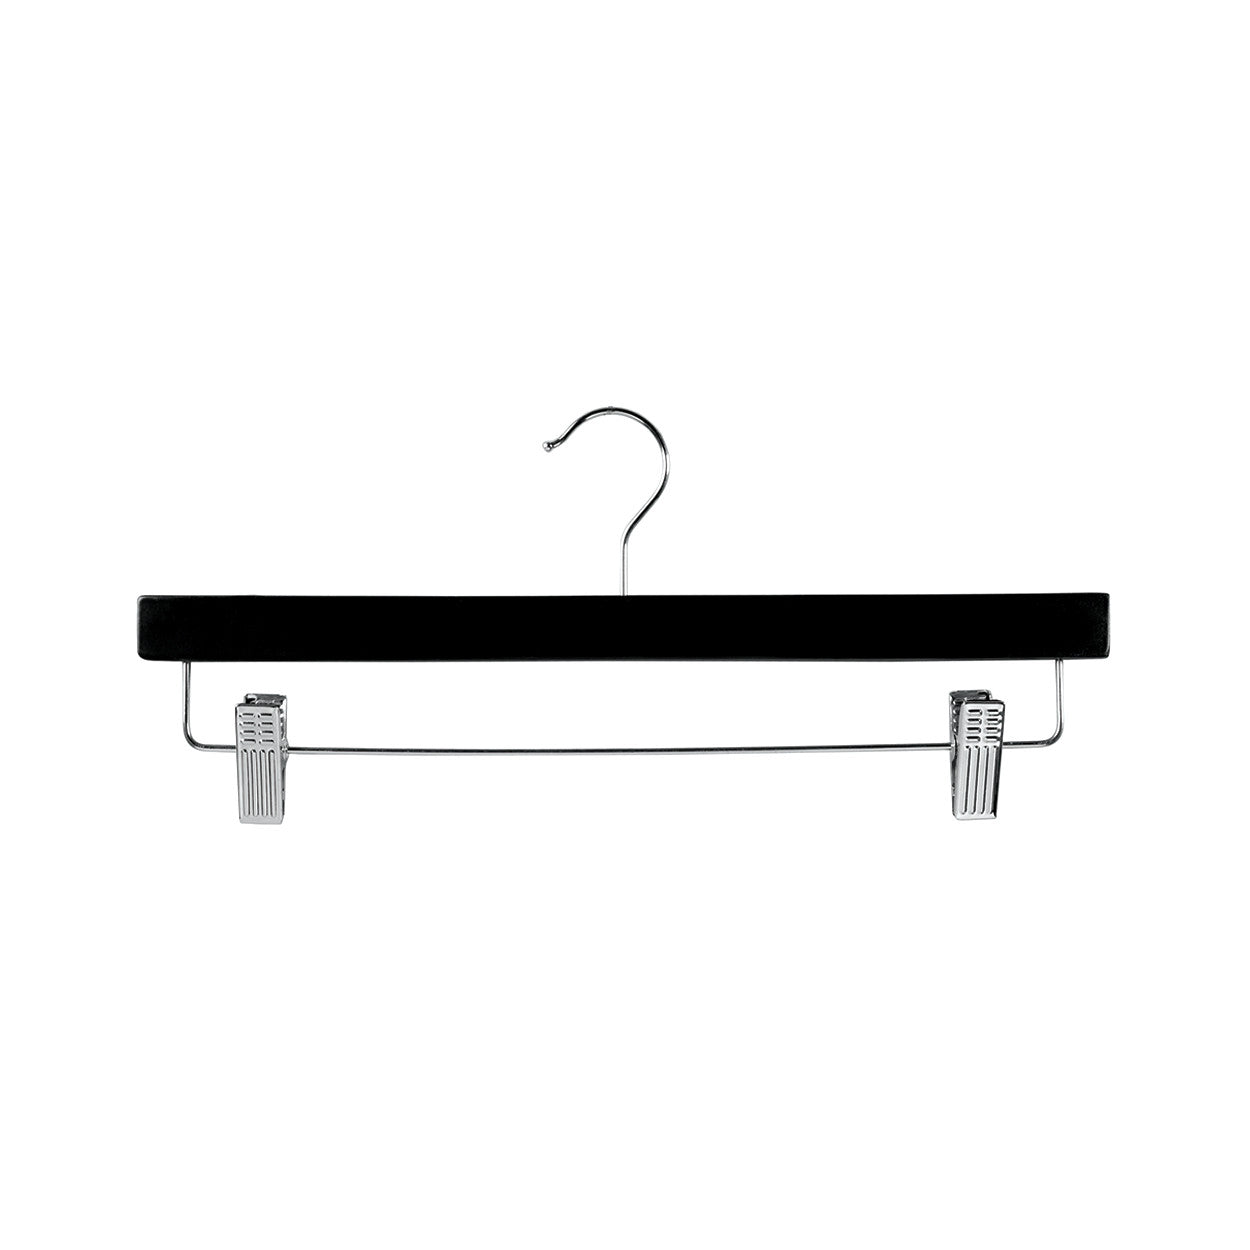 Black Wooden hanger with adjustable clips 380 W x 12 mm Thick (Bundle of 50) H2629BK-50